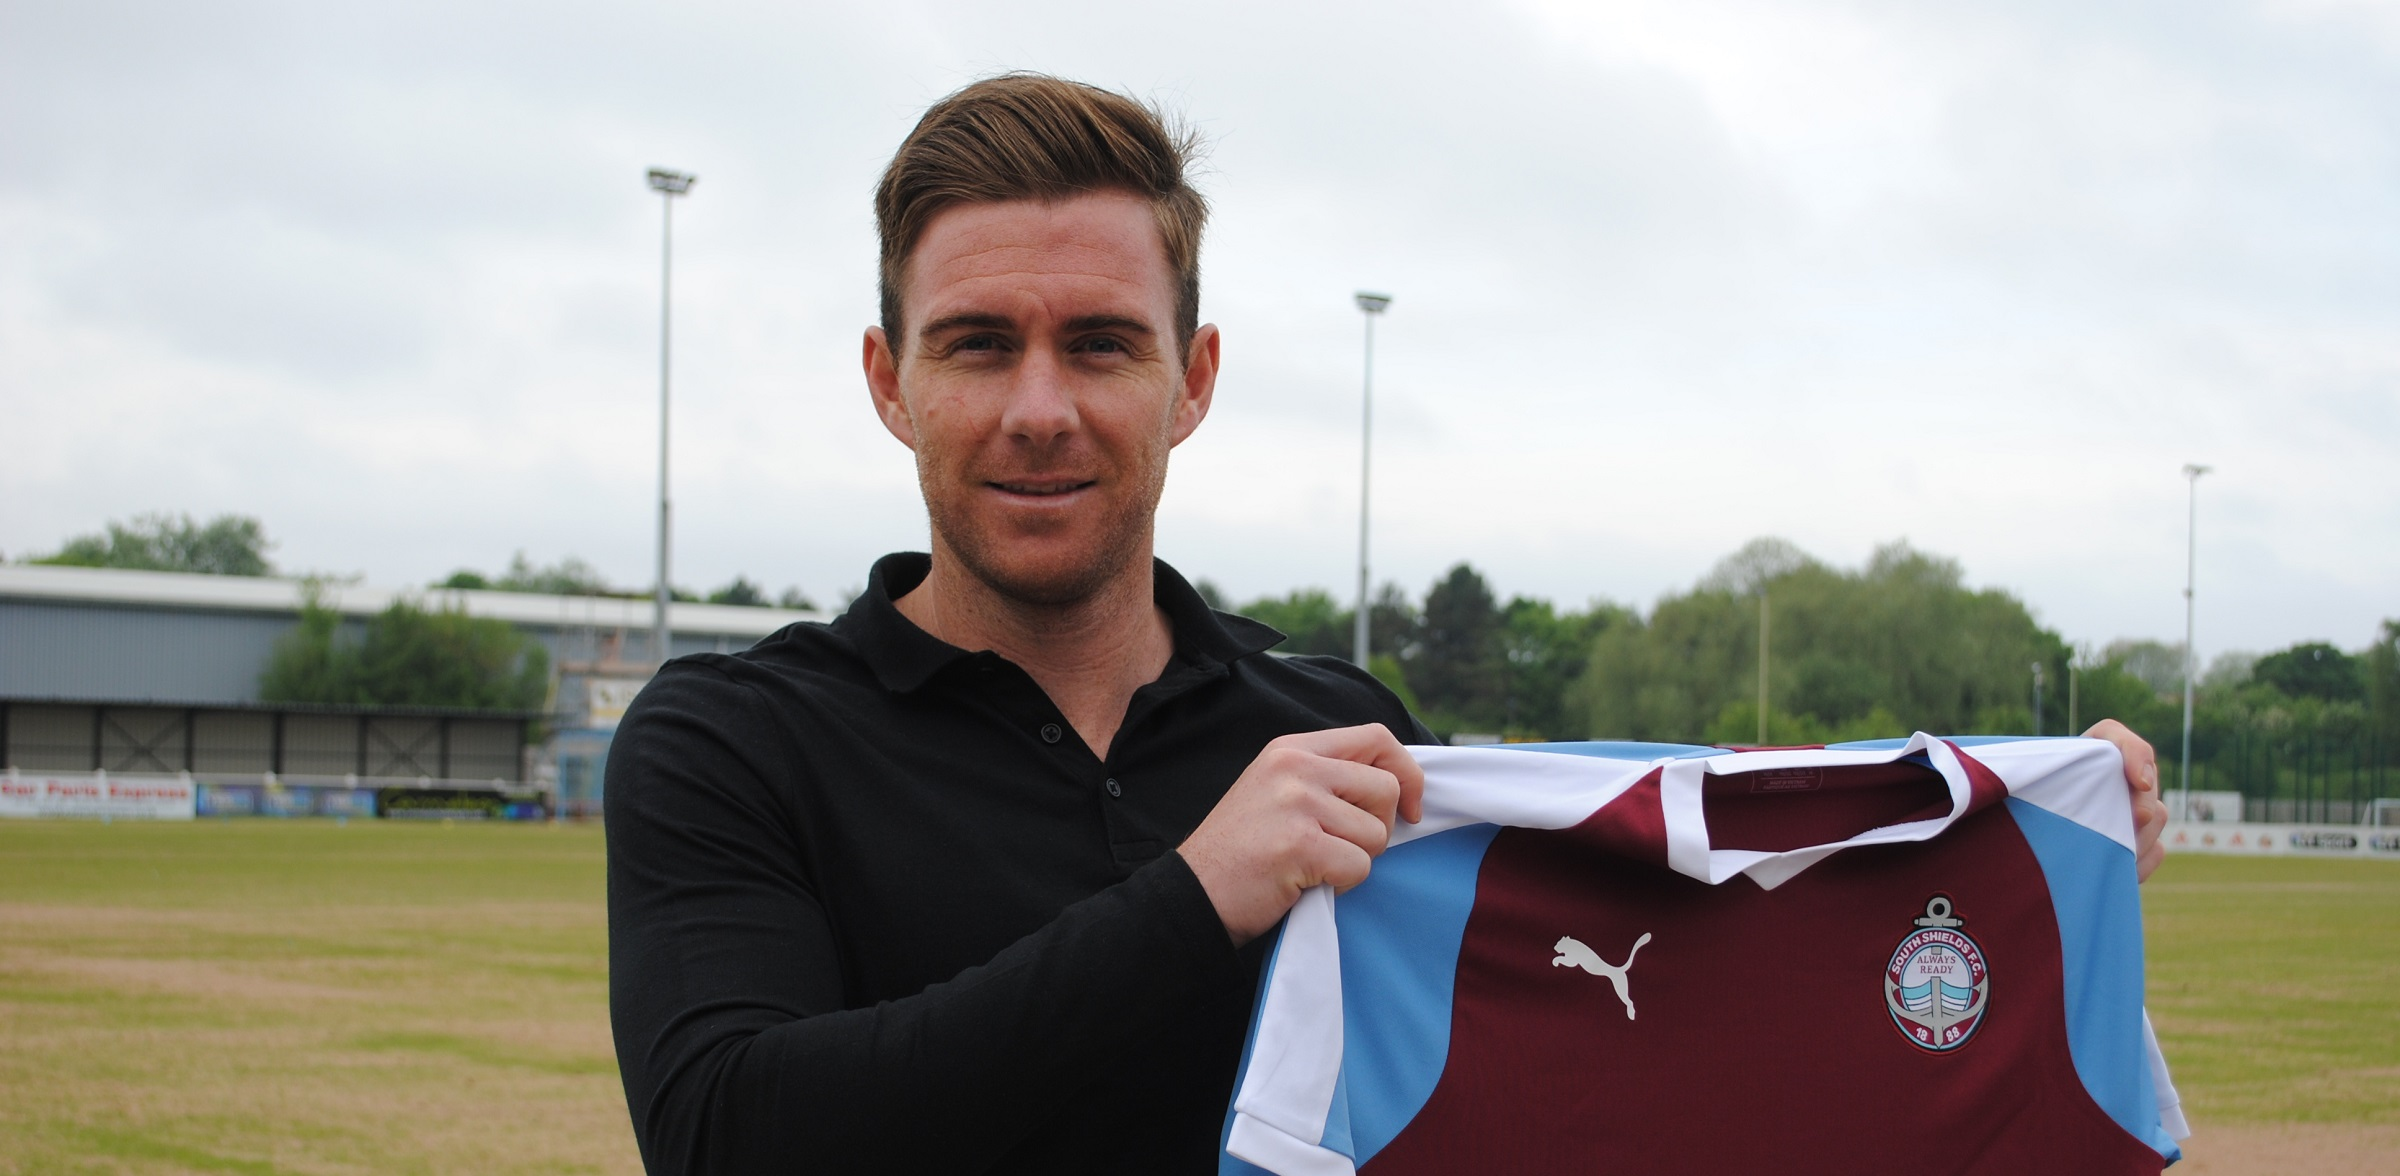 Phil Turnbull joins South Shields from Darlington